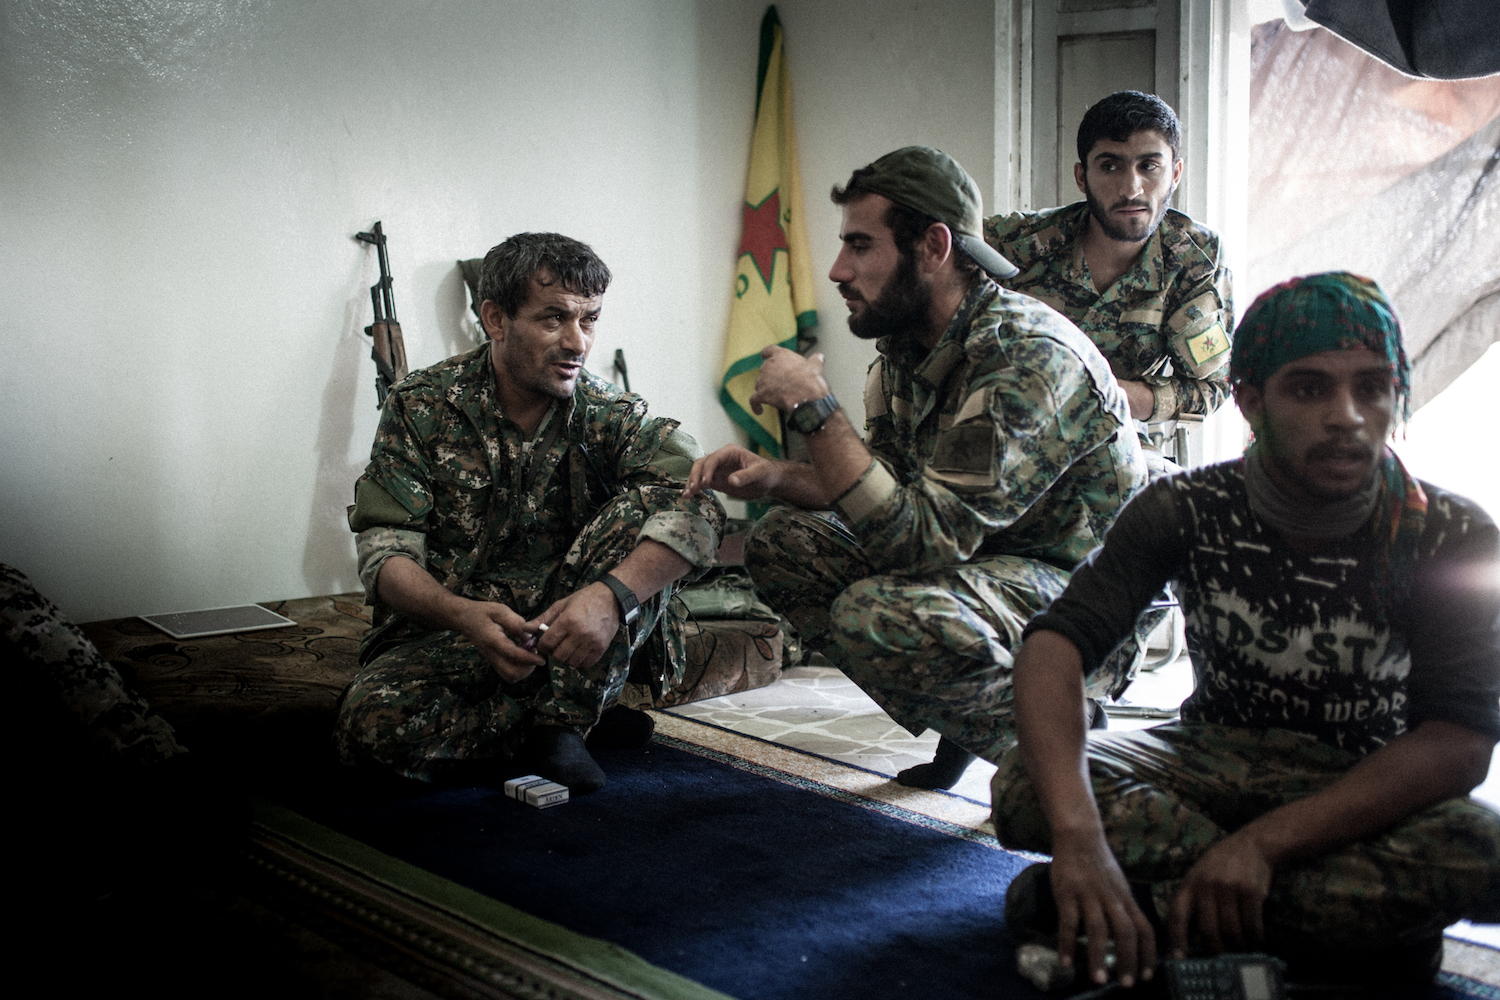 YPG fighters discuss their next steps